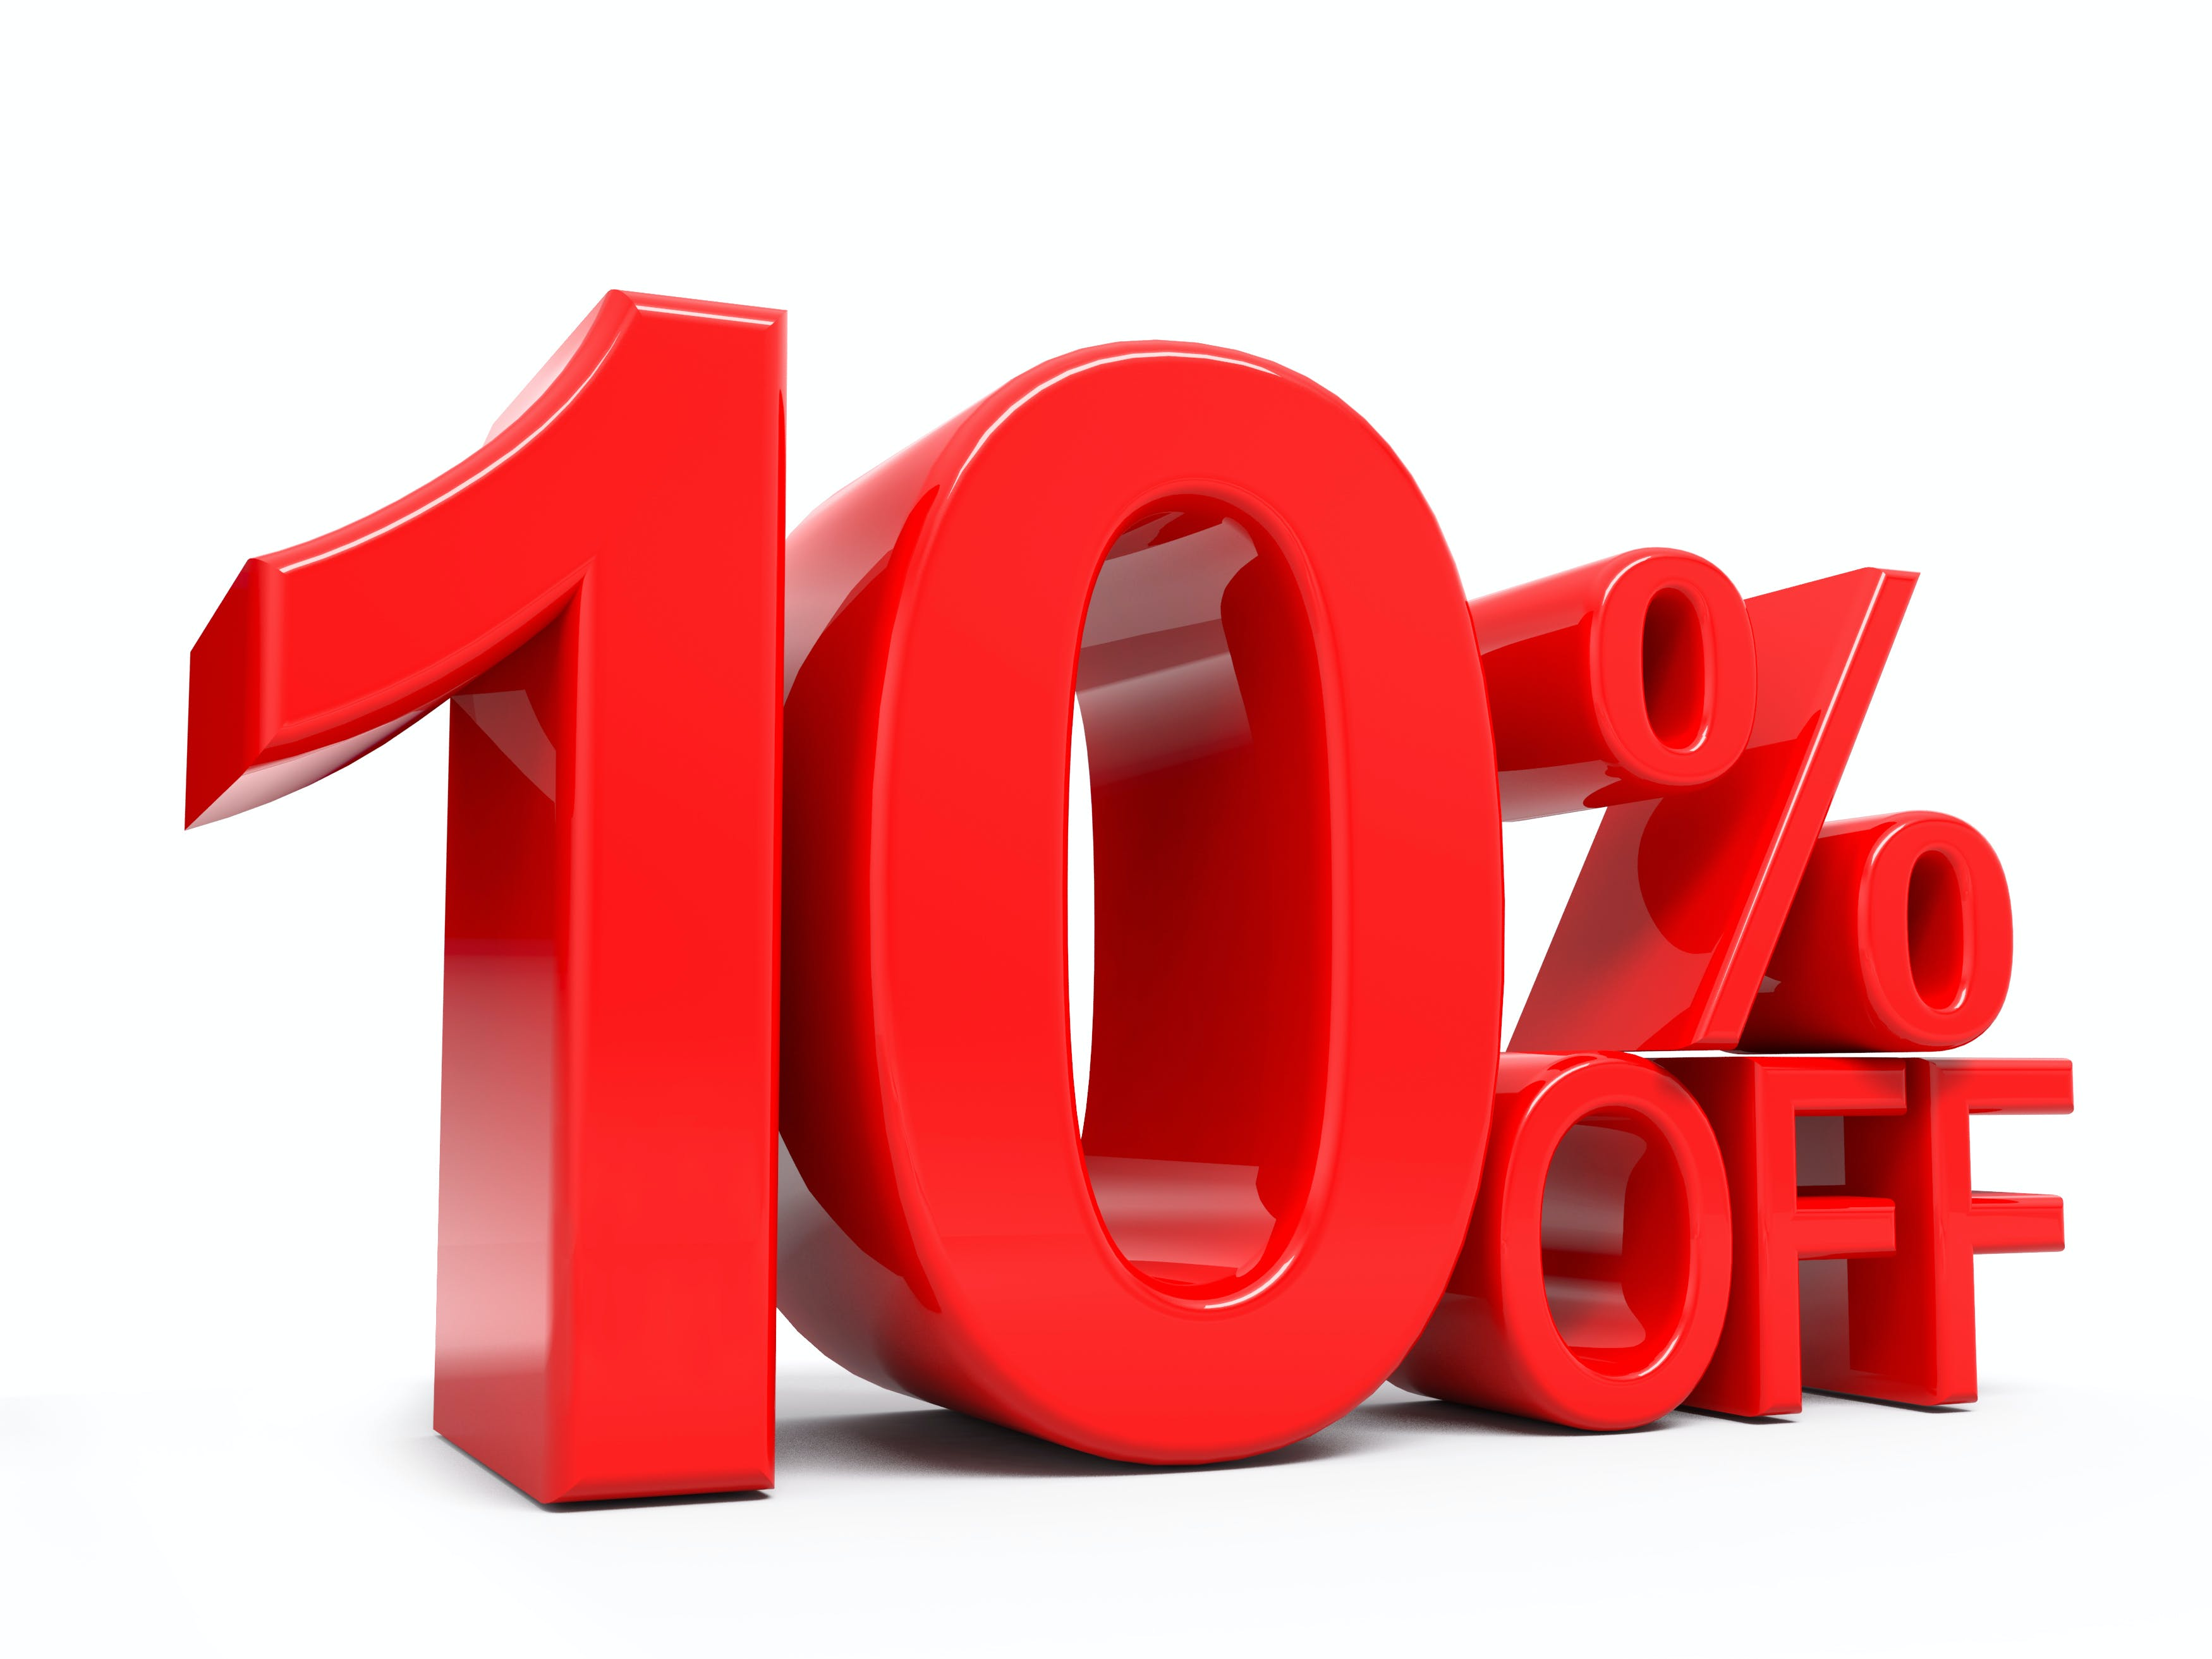 United Auto Group >> 10% discount when you book direct | Gardens Hotel Manchester